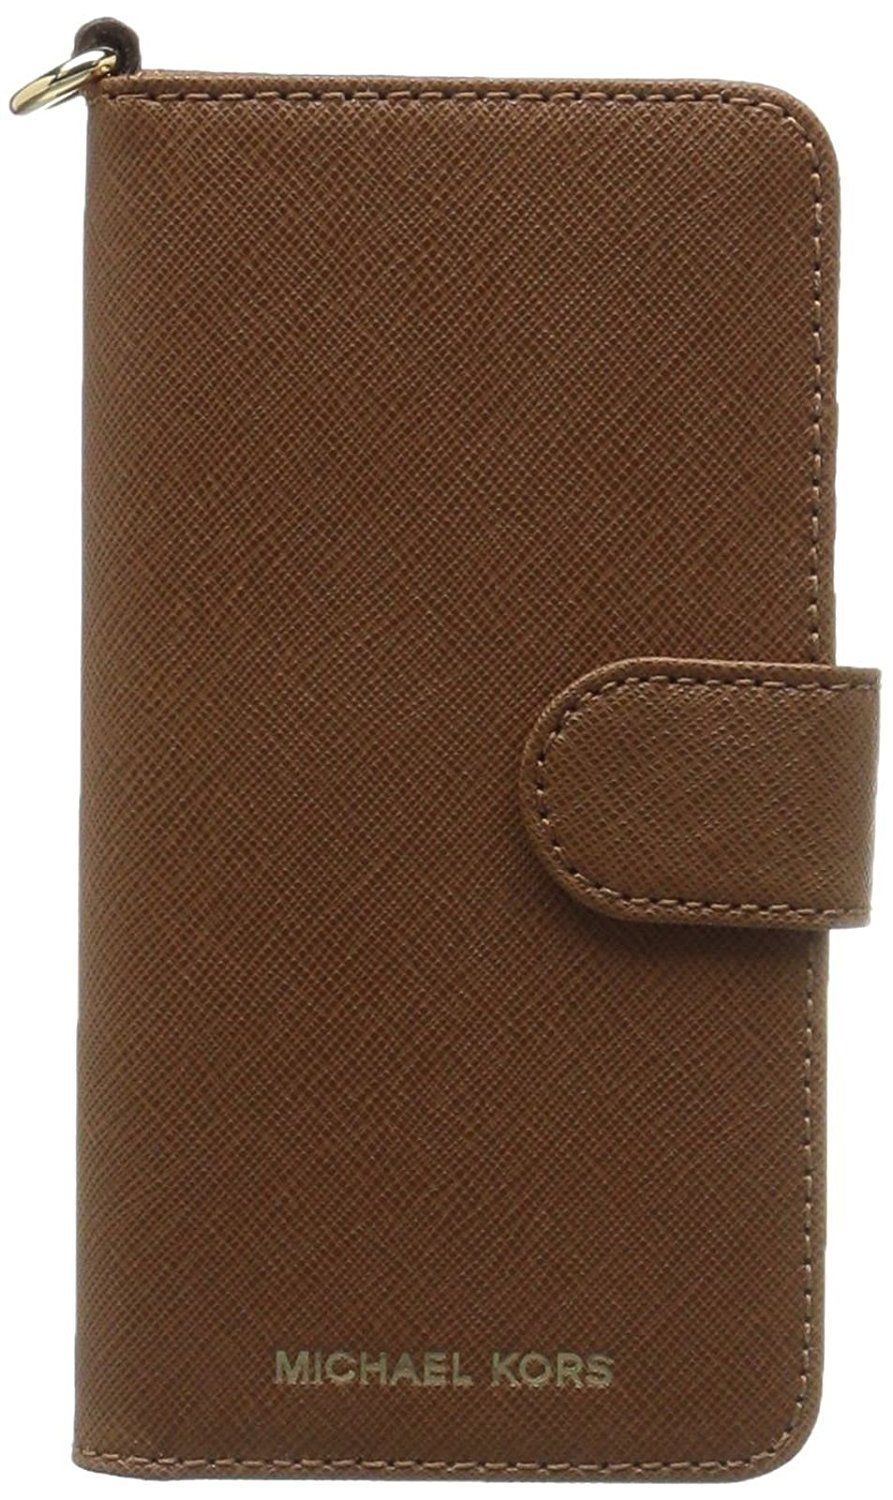 55768f694283d2 Michael Kors Electronic Leather Folio Phone Case for iPhone 7 Plus & iPhone  8 Plus, Luggage